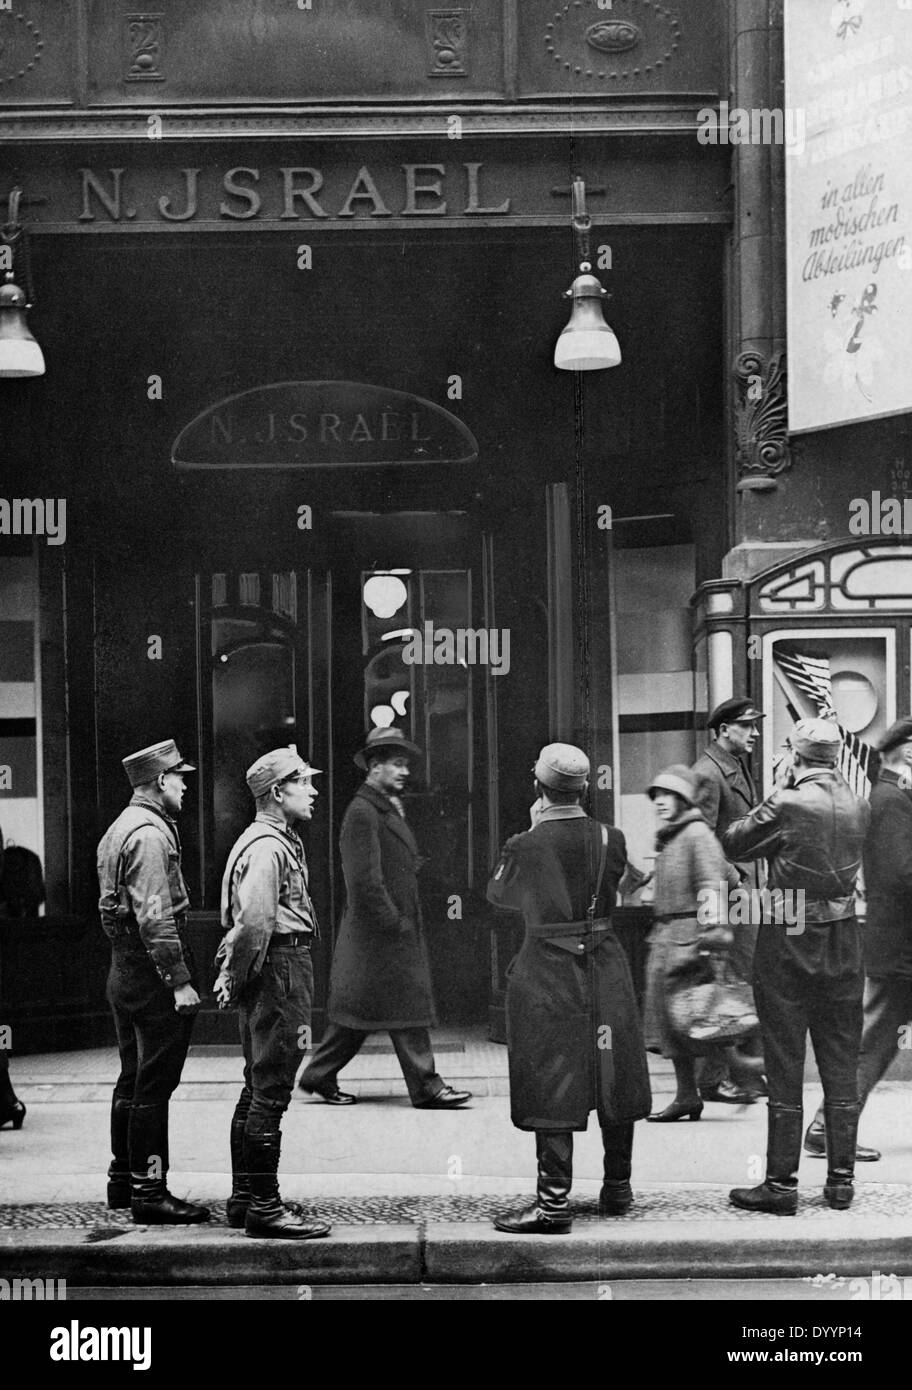 National Socialists in front of the Jewish store Nathan Israel in Berlin, 1933 - Stock Image